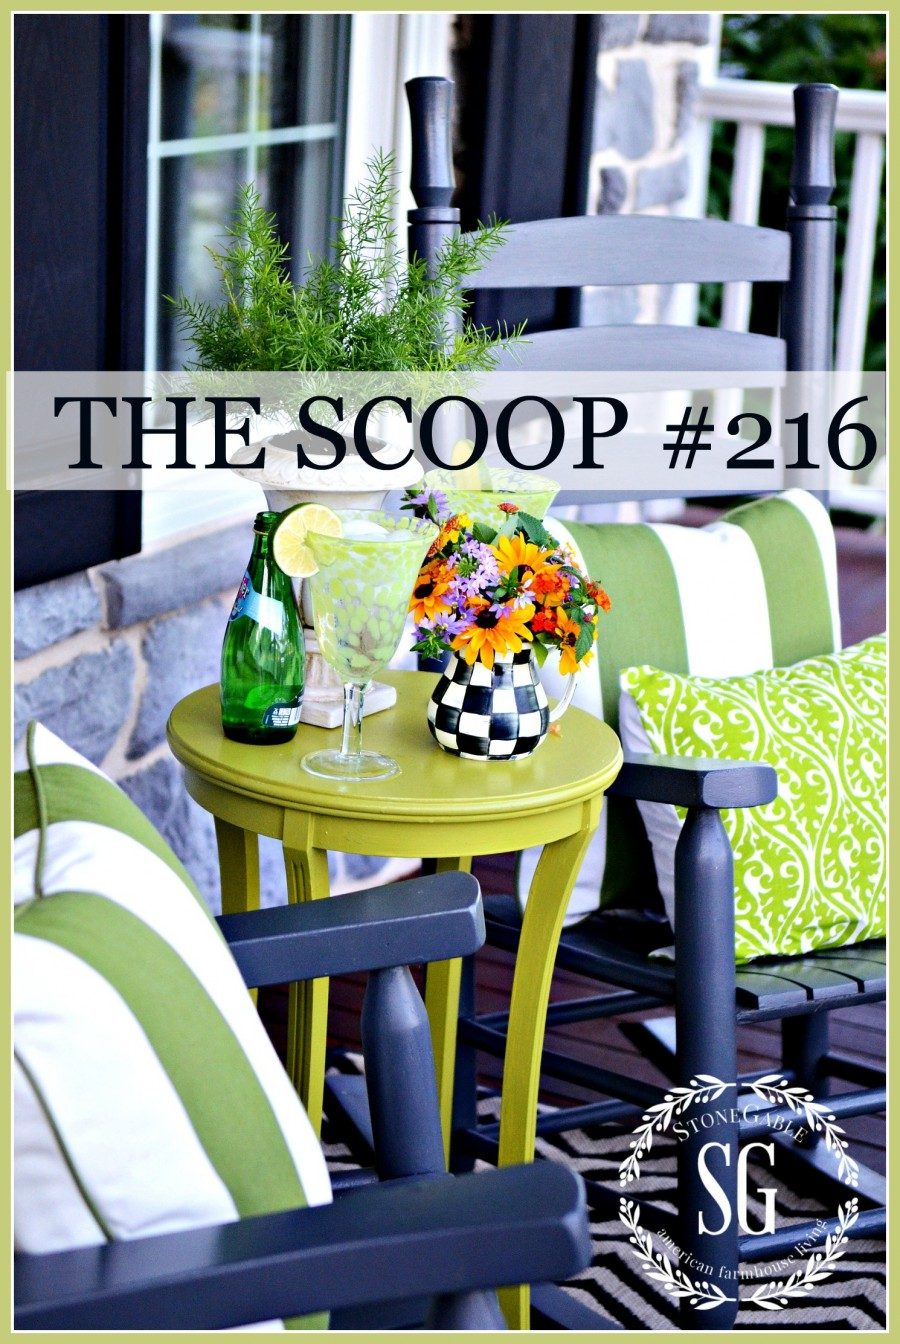 THE SCOOP #216-Hundreds of post about home, garden, diy and more!